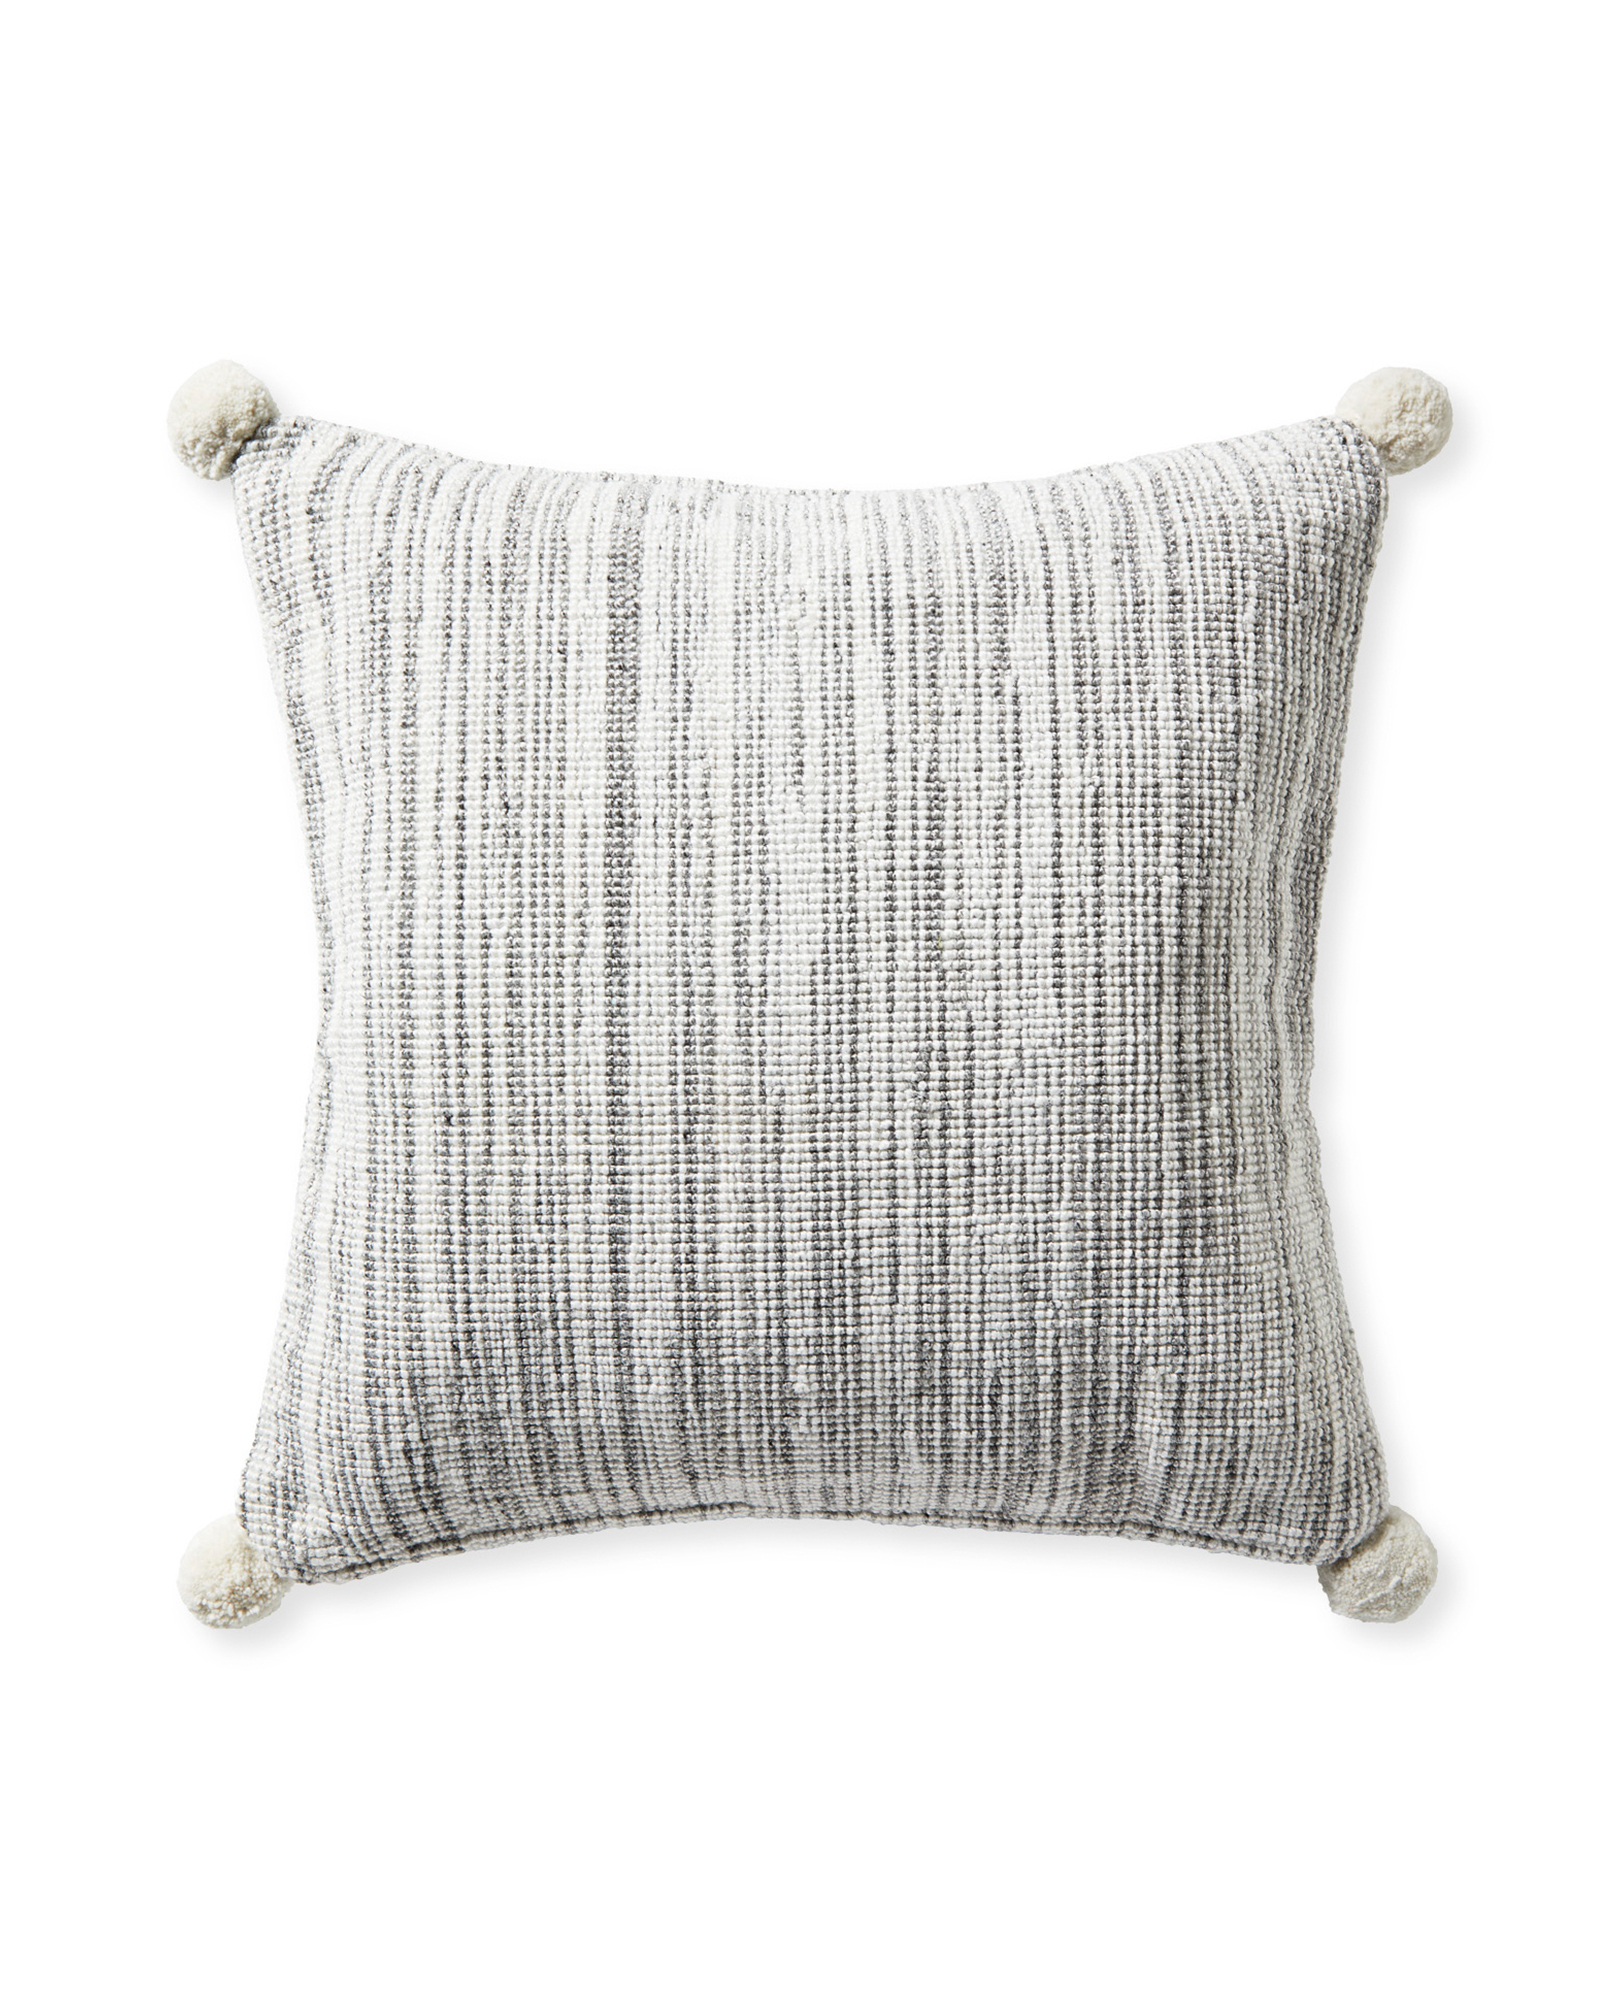 Bennington Pillow Cover, Heathered Grey